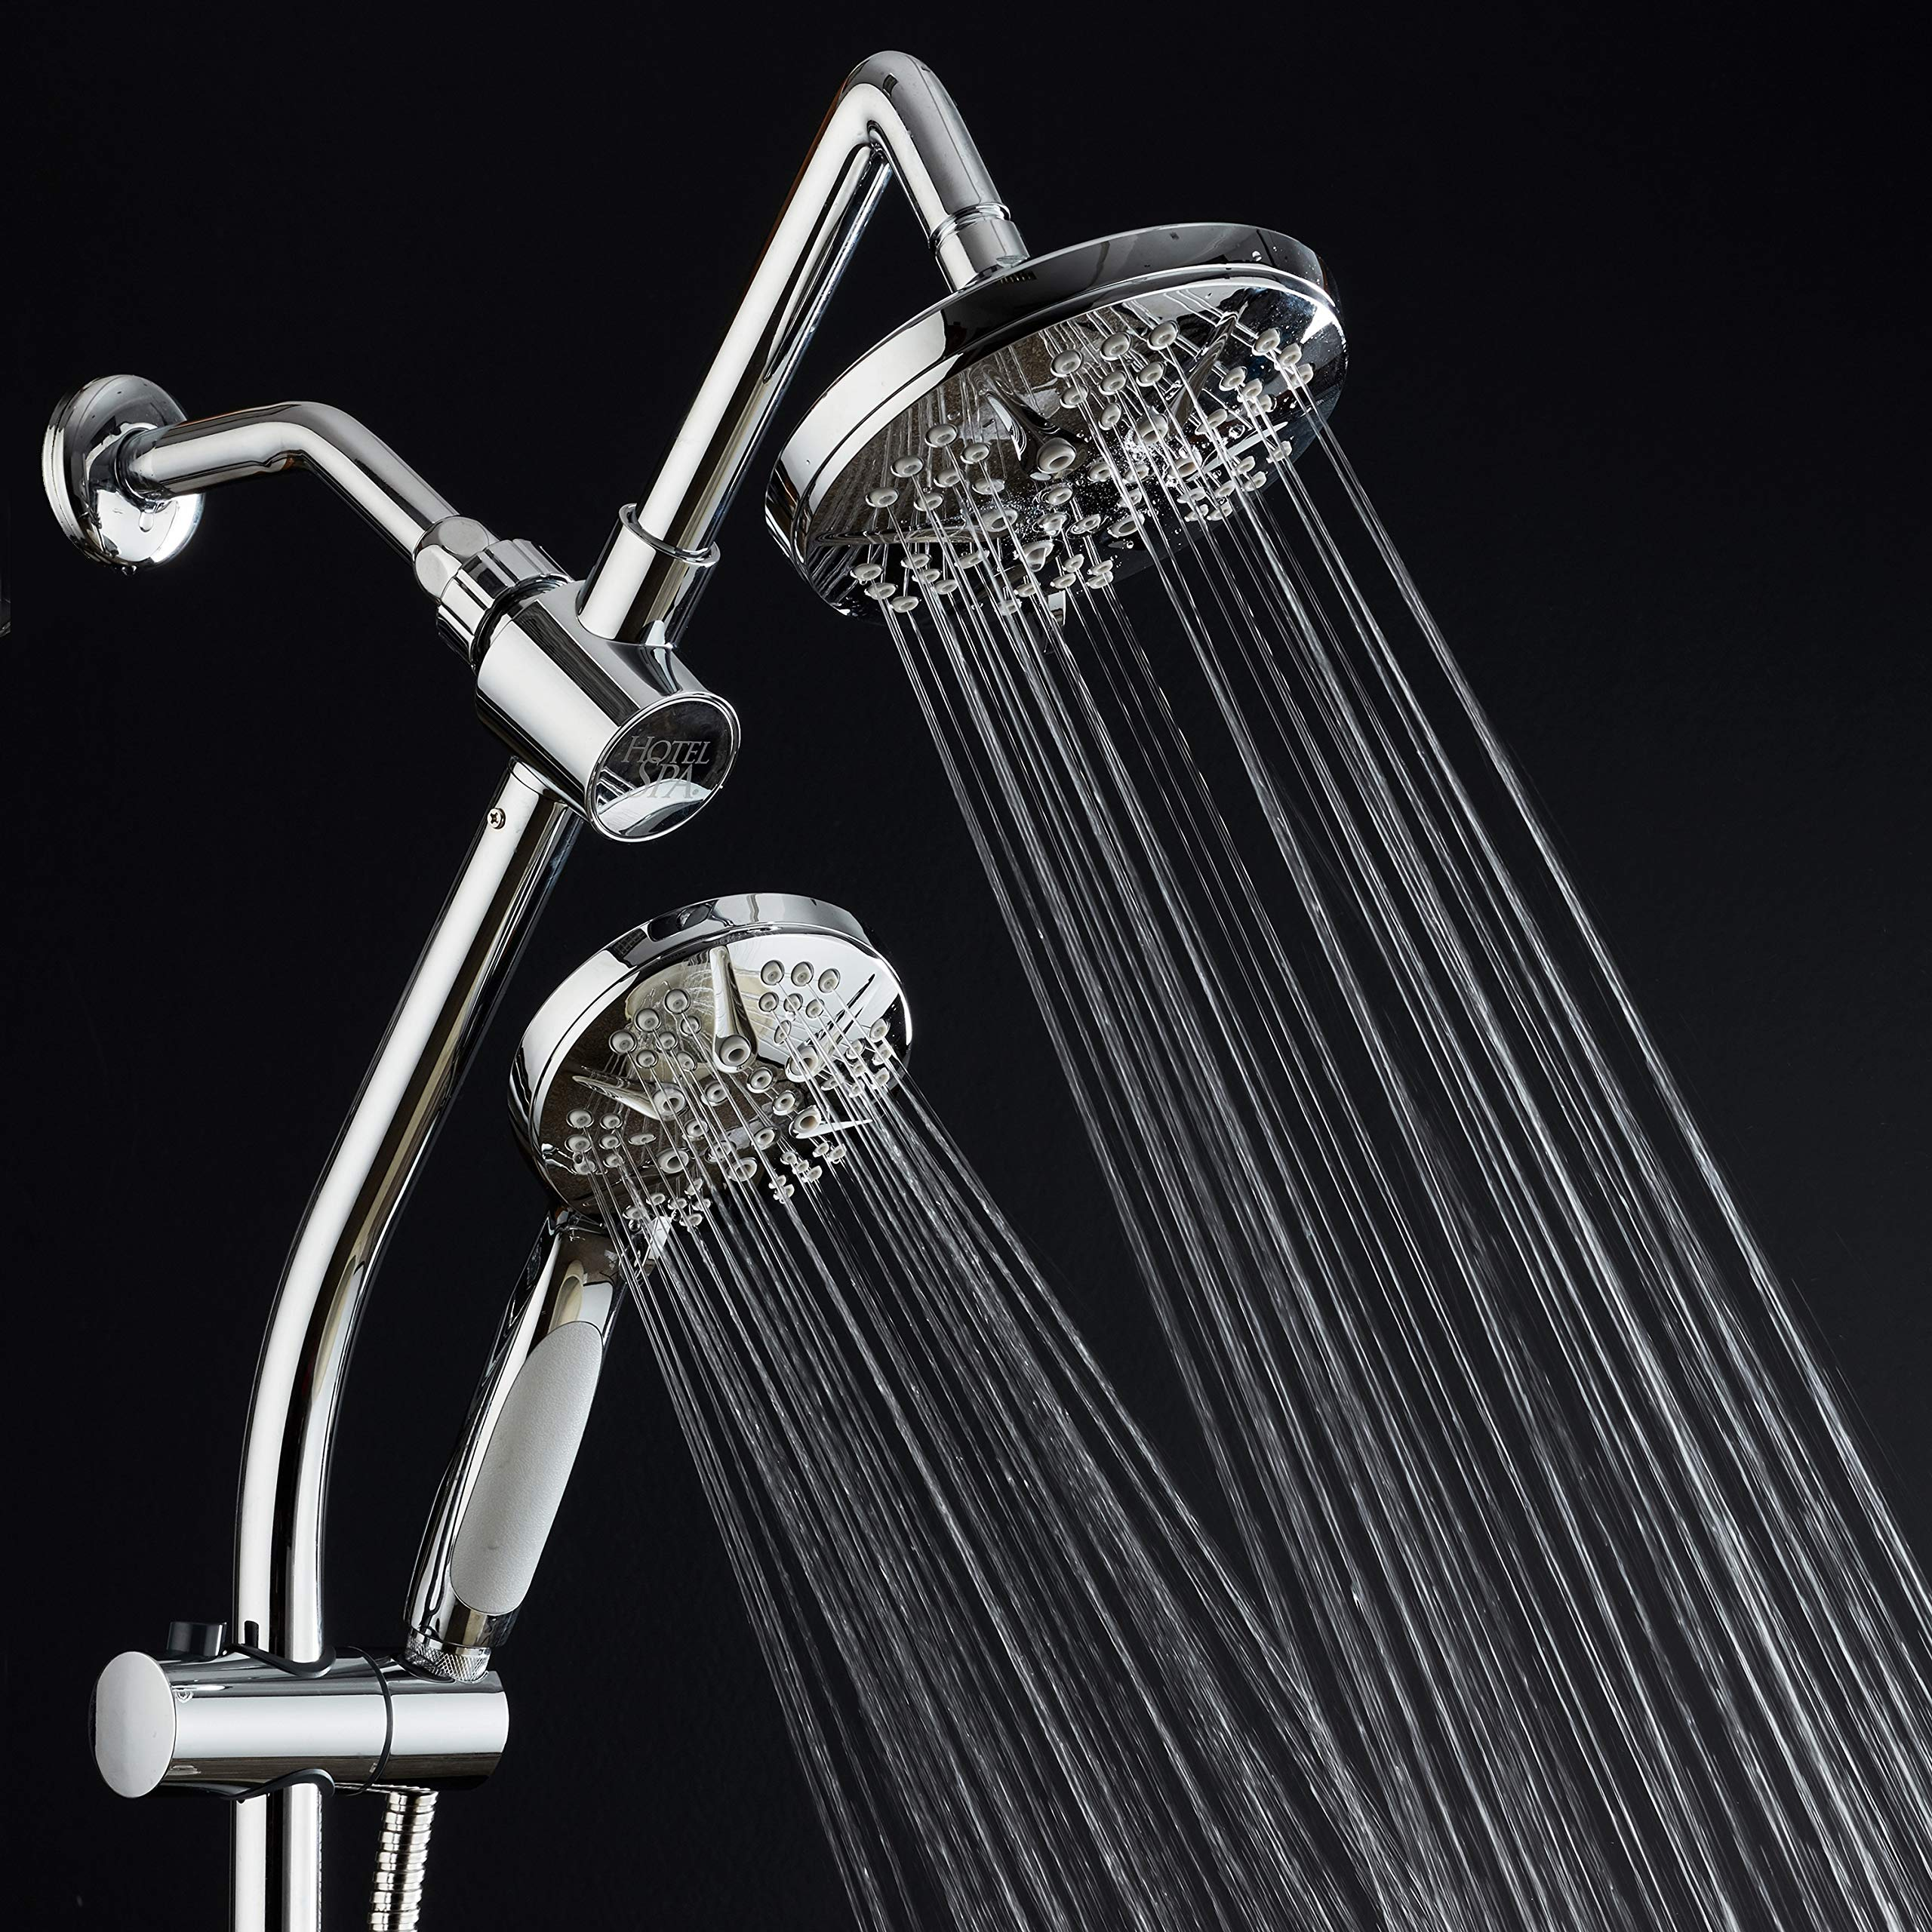 Spa Station 34'' Adjustable Drill-Free Slide Bar with 48-setting Showerhead Combo & Height Extension Arm / 3-way Rain & Handheld Shower Head/Low Reach Diverter/Stainless Steel Hose/Chrome by Hotel Spa (Image #6)